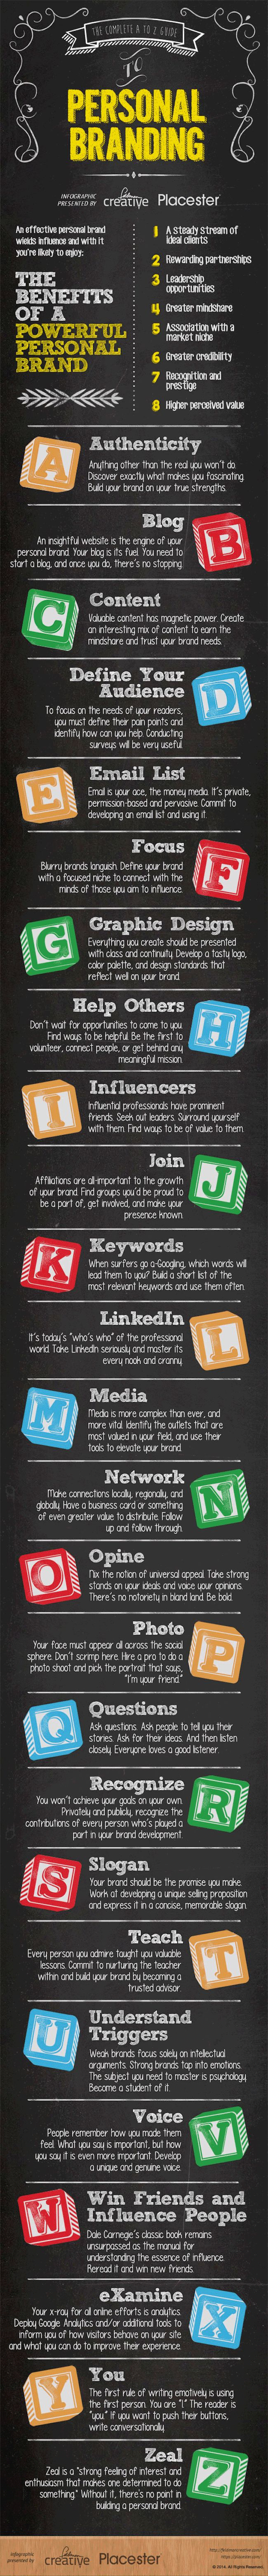 The ABCs of Personal Branding [Infographic]